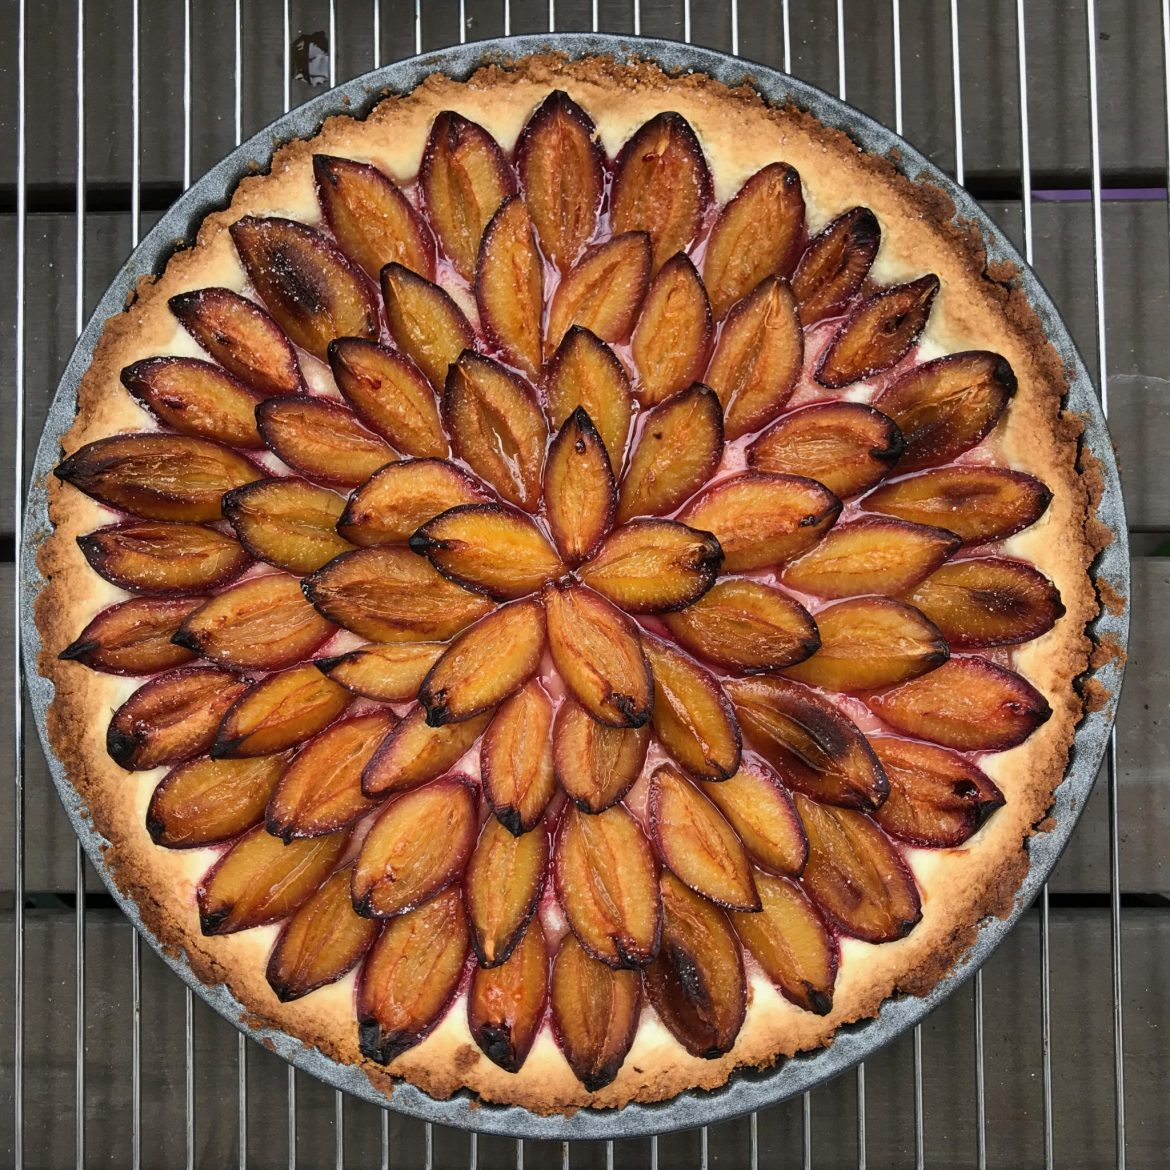 A round German plum cake taken from above